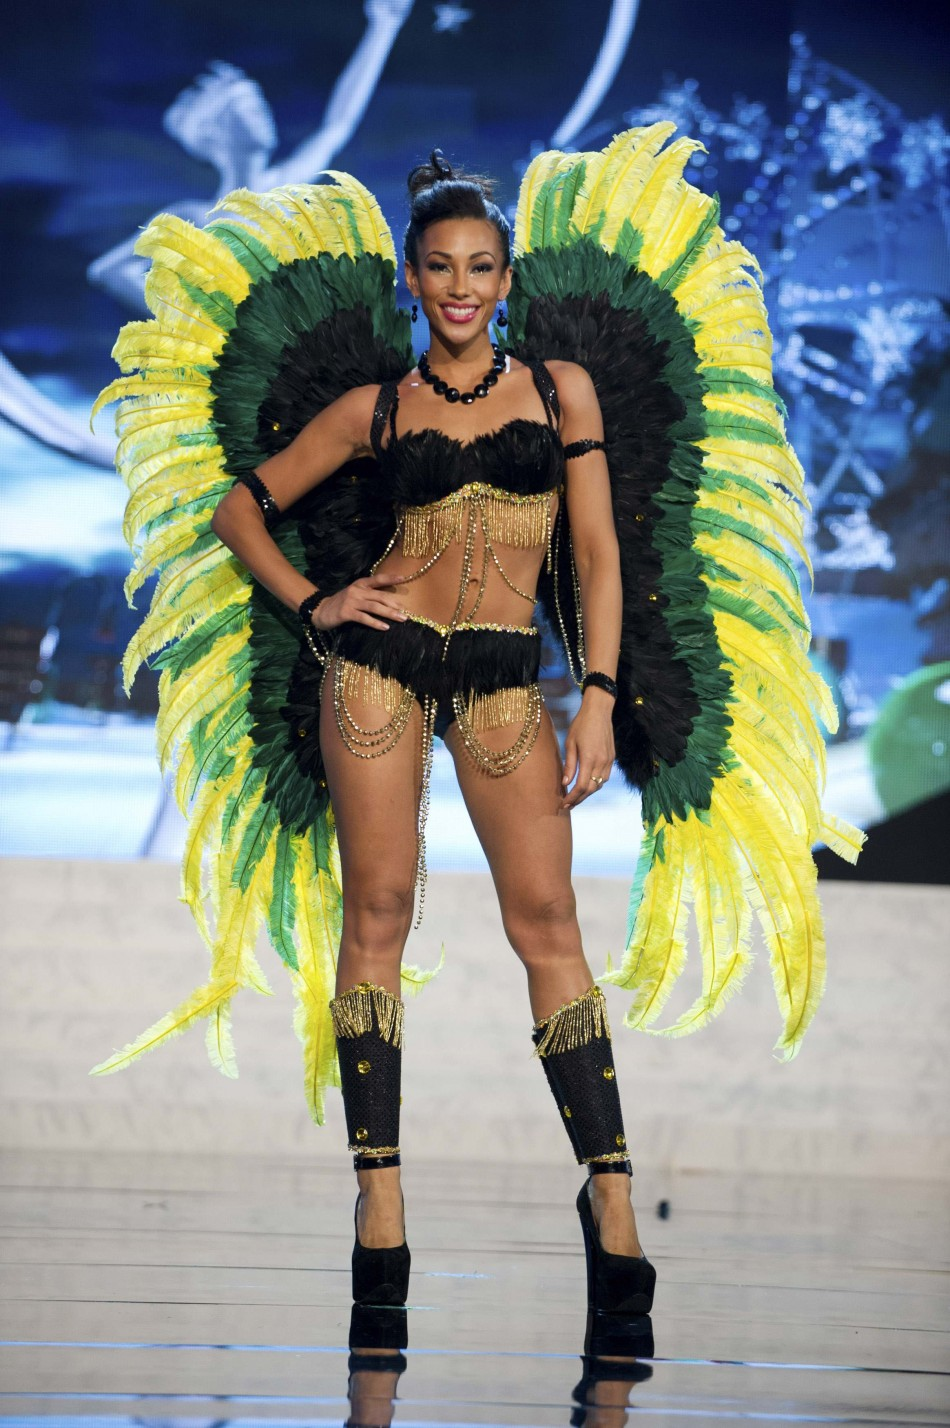 Miss Jamaica Chantal Zaky on stage at the 2012 Miss Universe National Costume Show at PH Live in Las Vegas